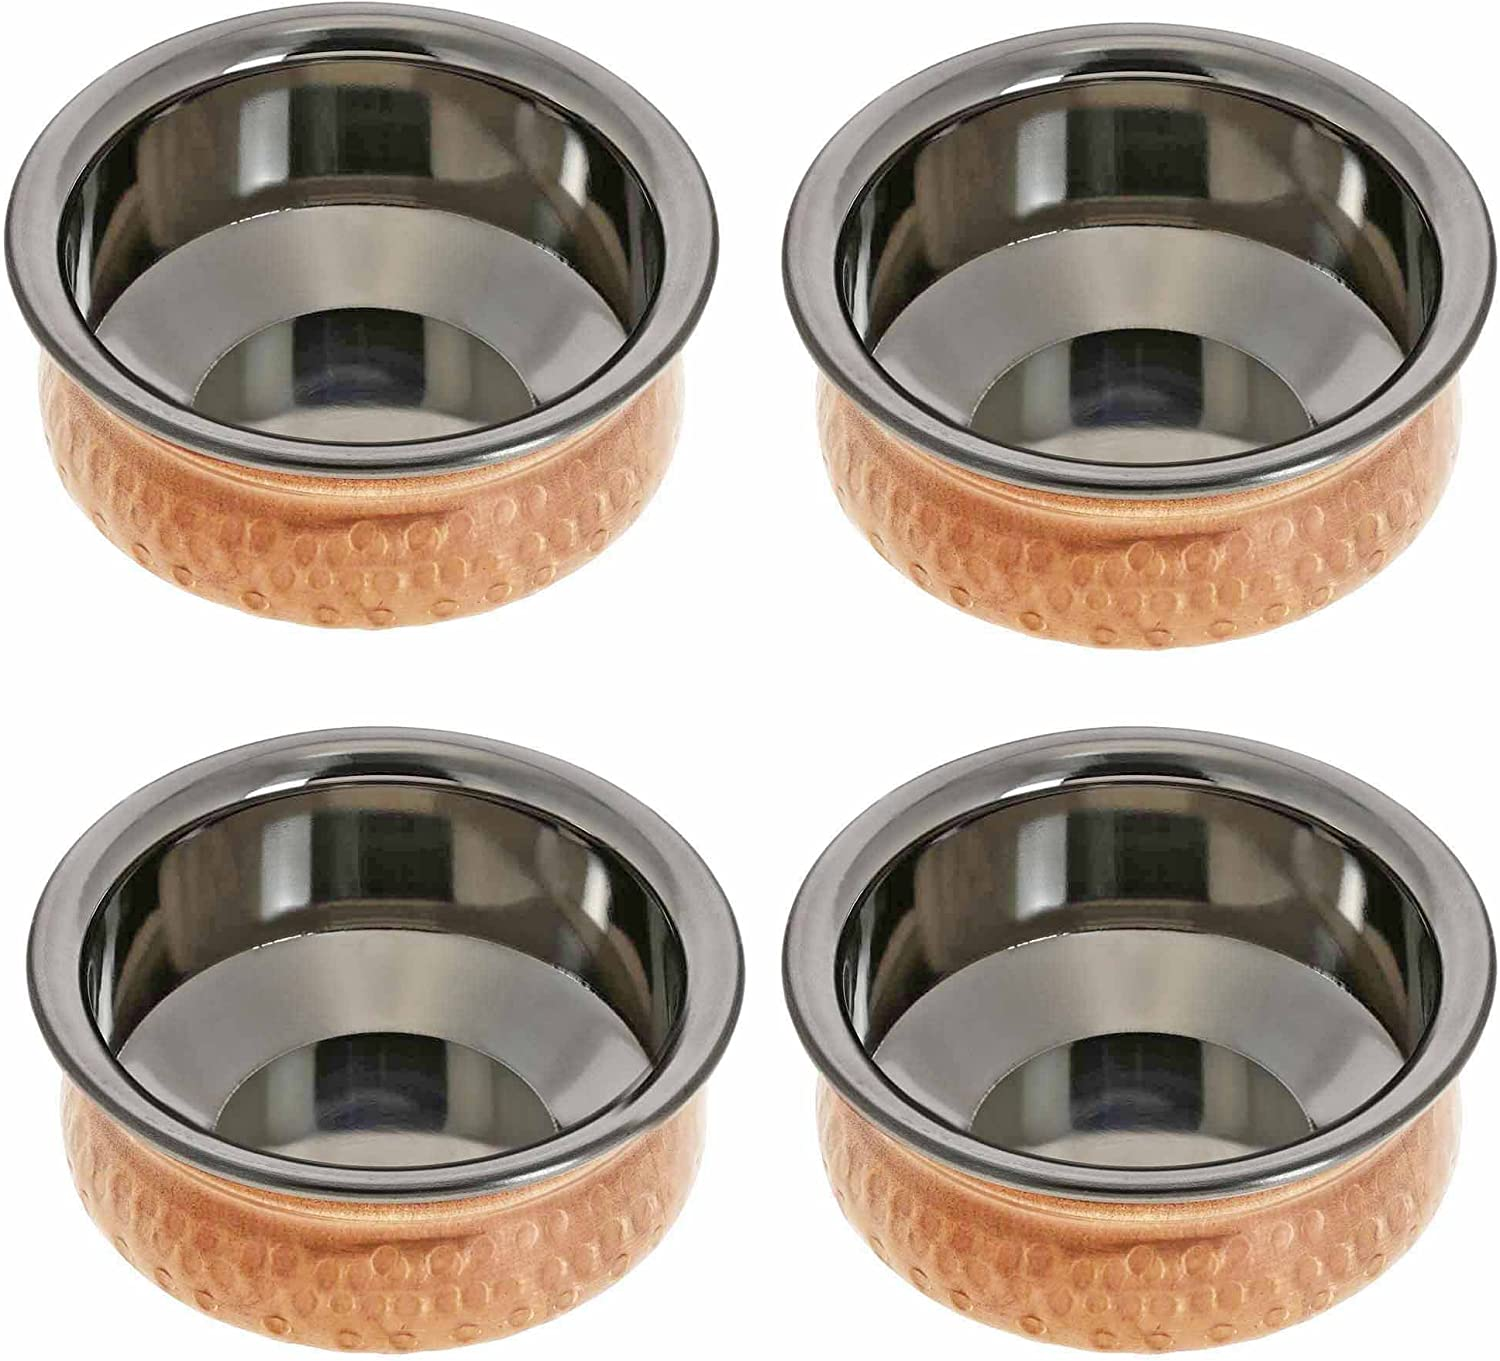 4 Inches Handmade Indian Copper Bowls Set Fort Worth Mall Genuine Free Shipping of Dinnerware Bowl -